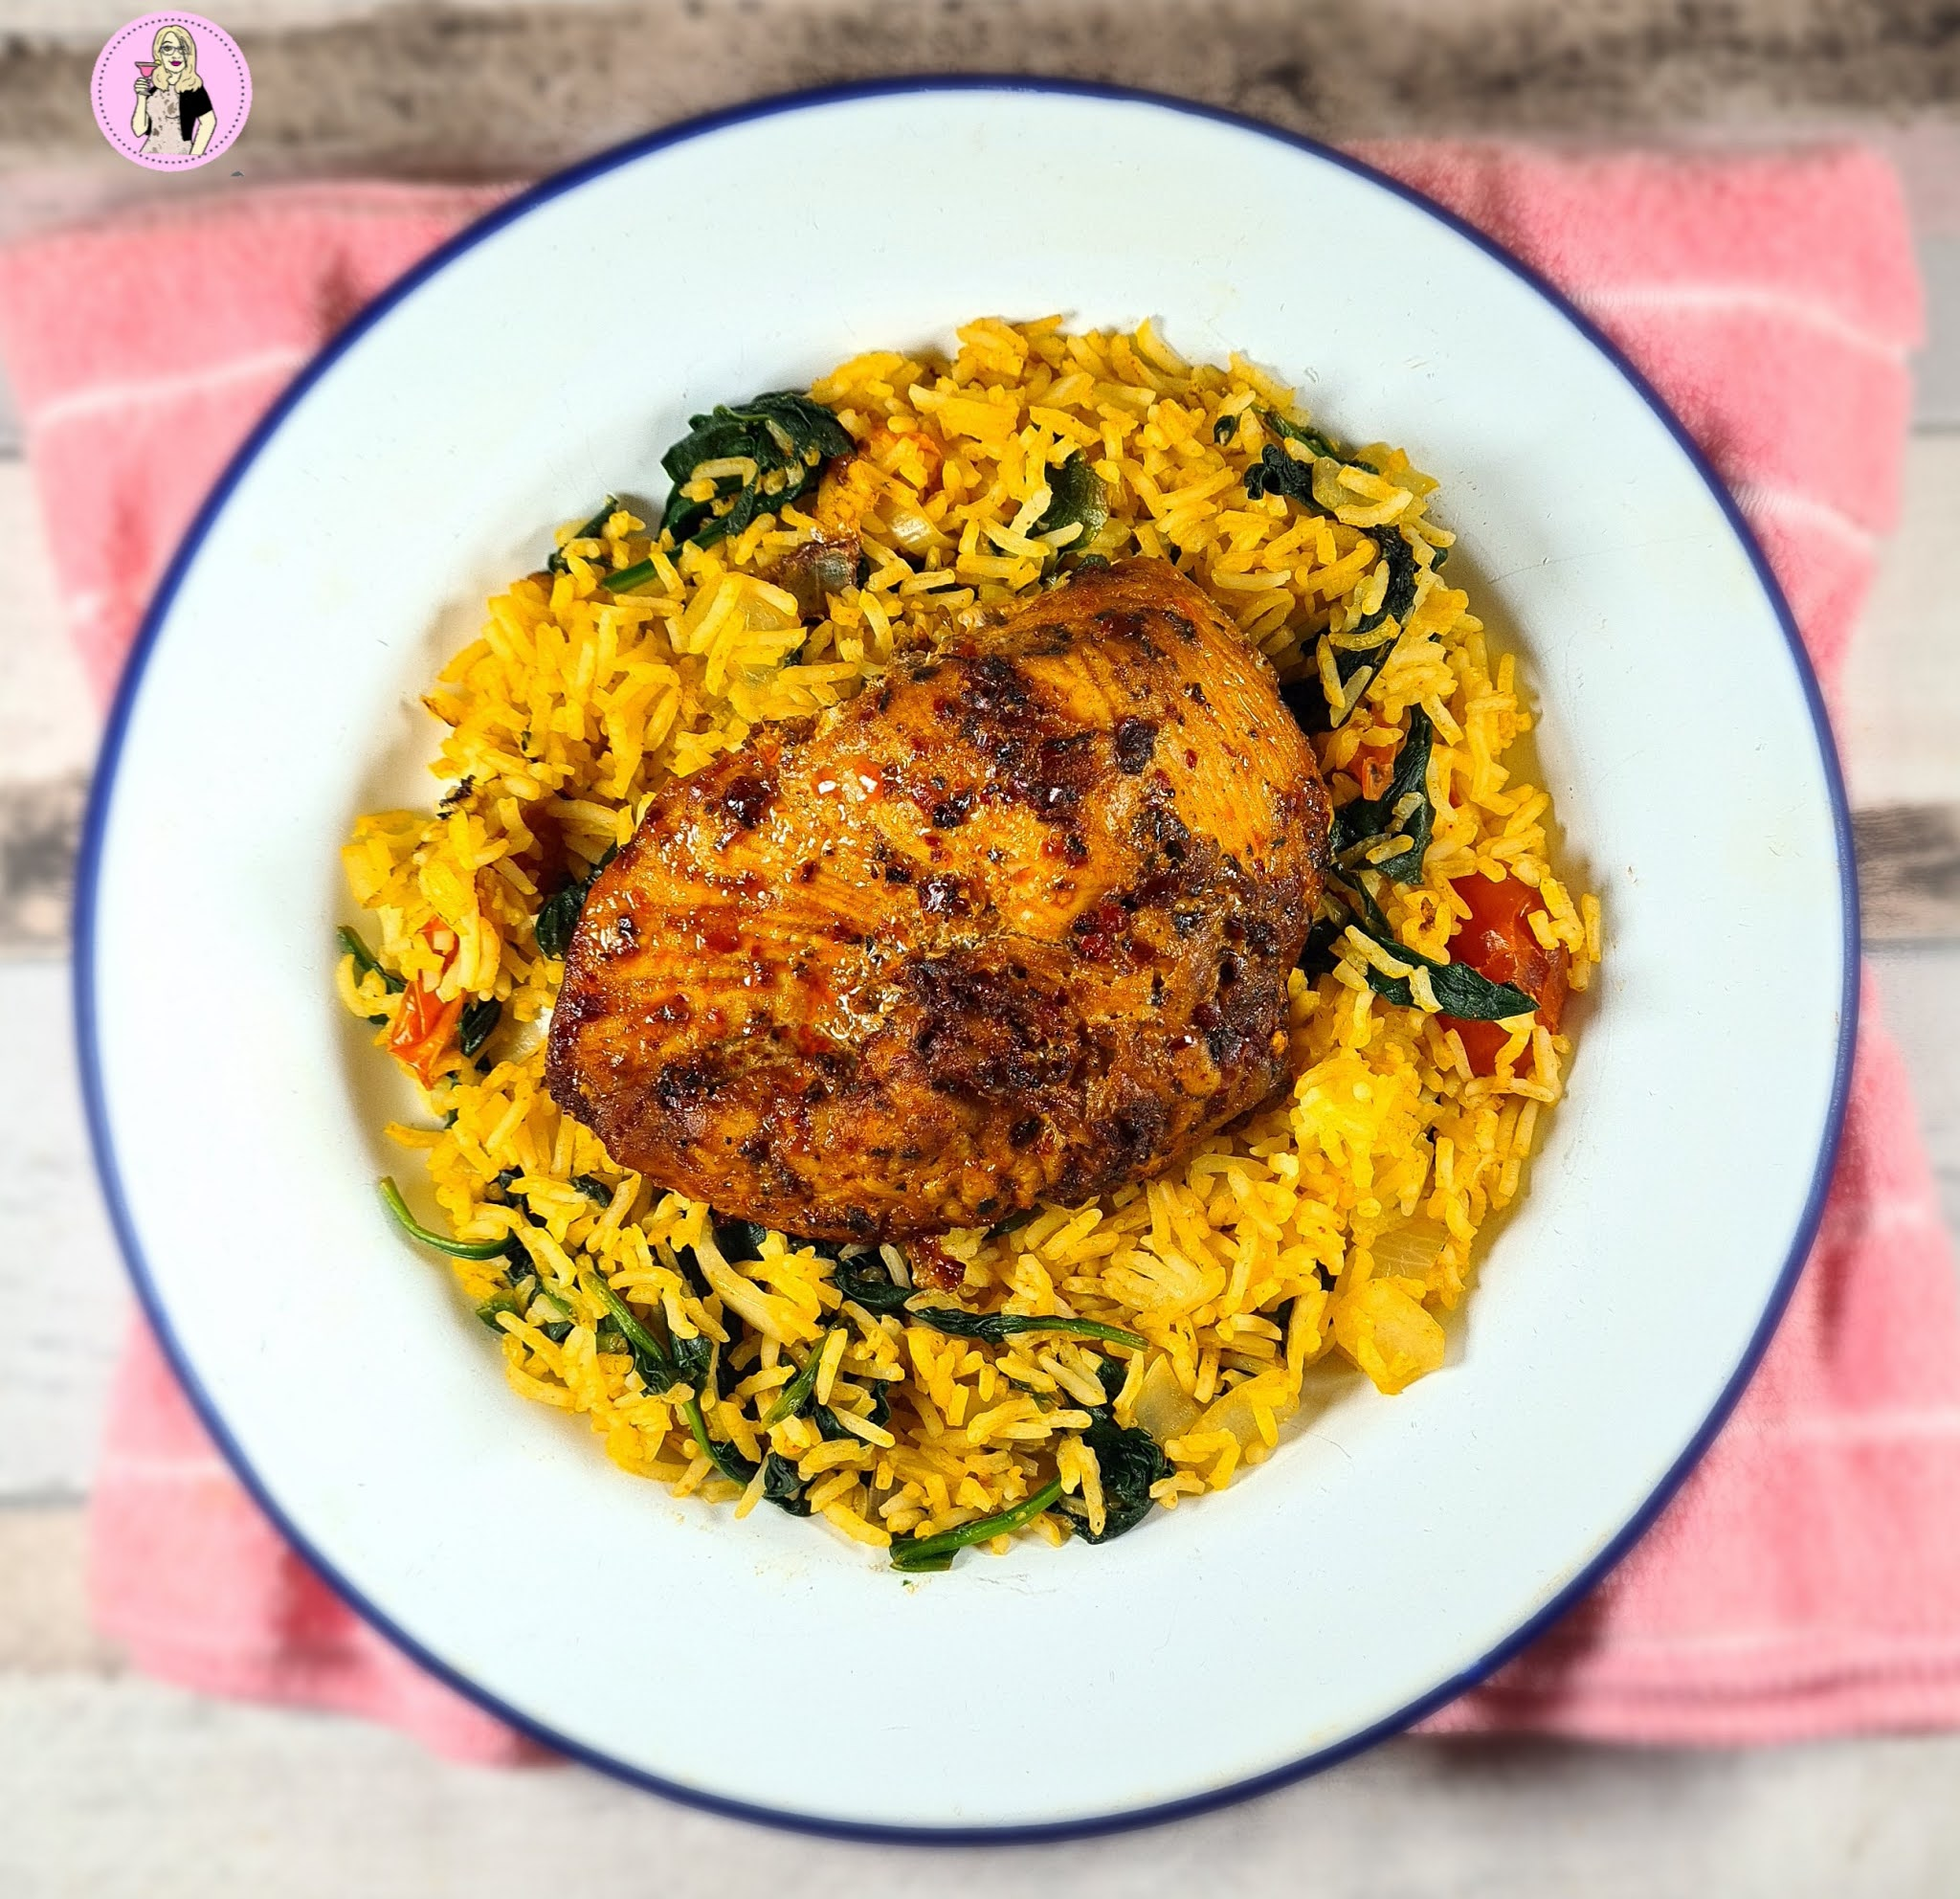 Cajun Chicken Breast Rice Recipe Slimming Friendly Sugar Pink Food